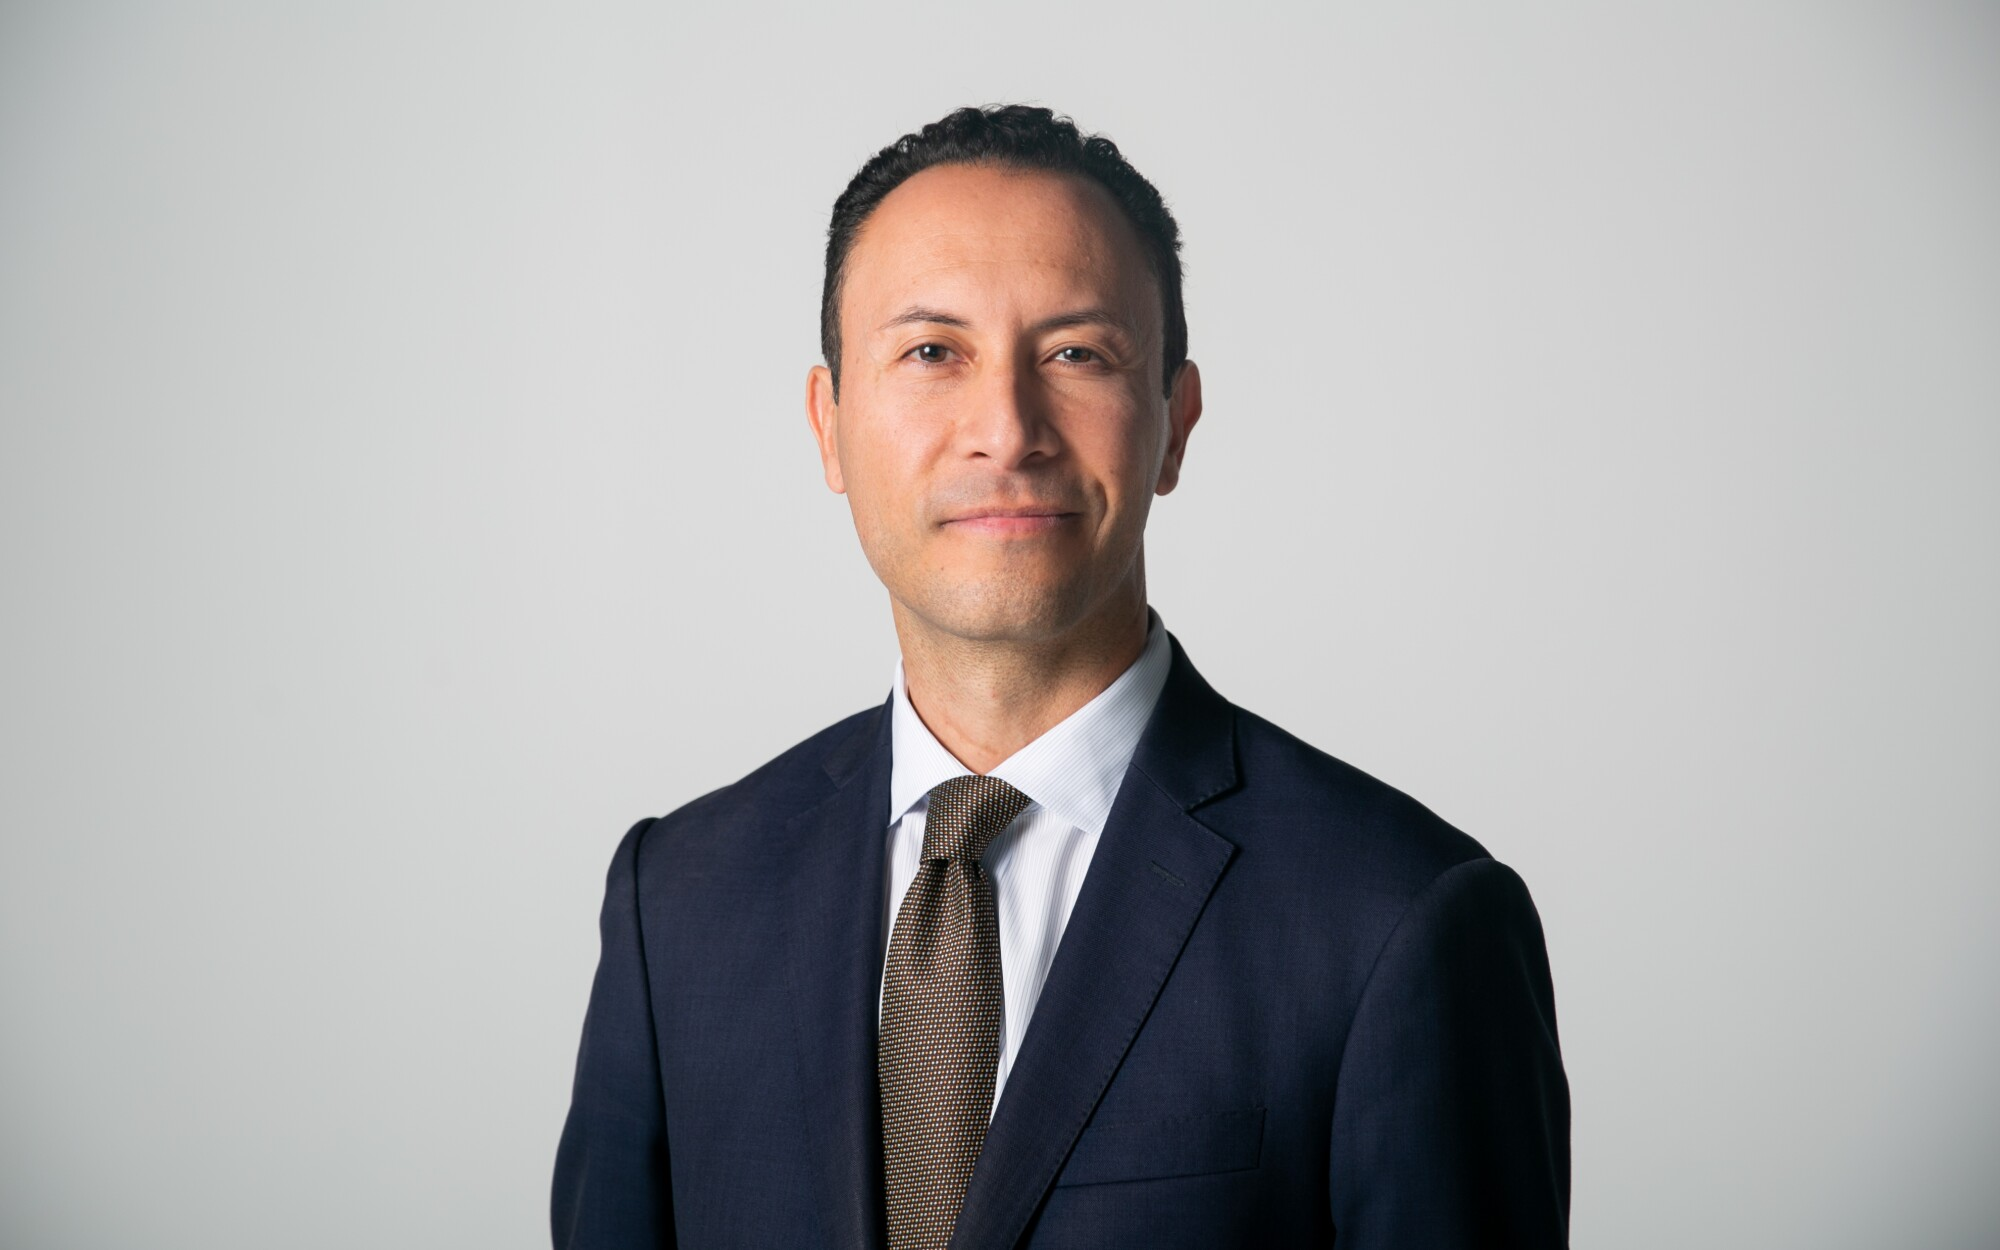 Rafael Castellanos, candidate for the San Diego County Board of Supervisors District 1